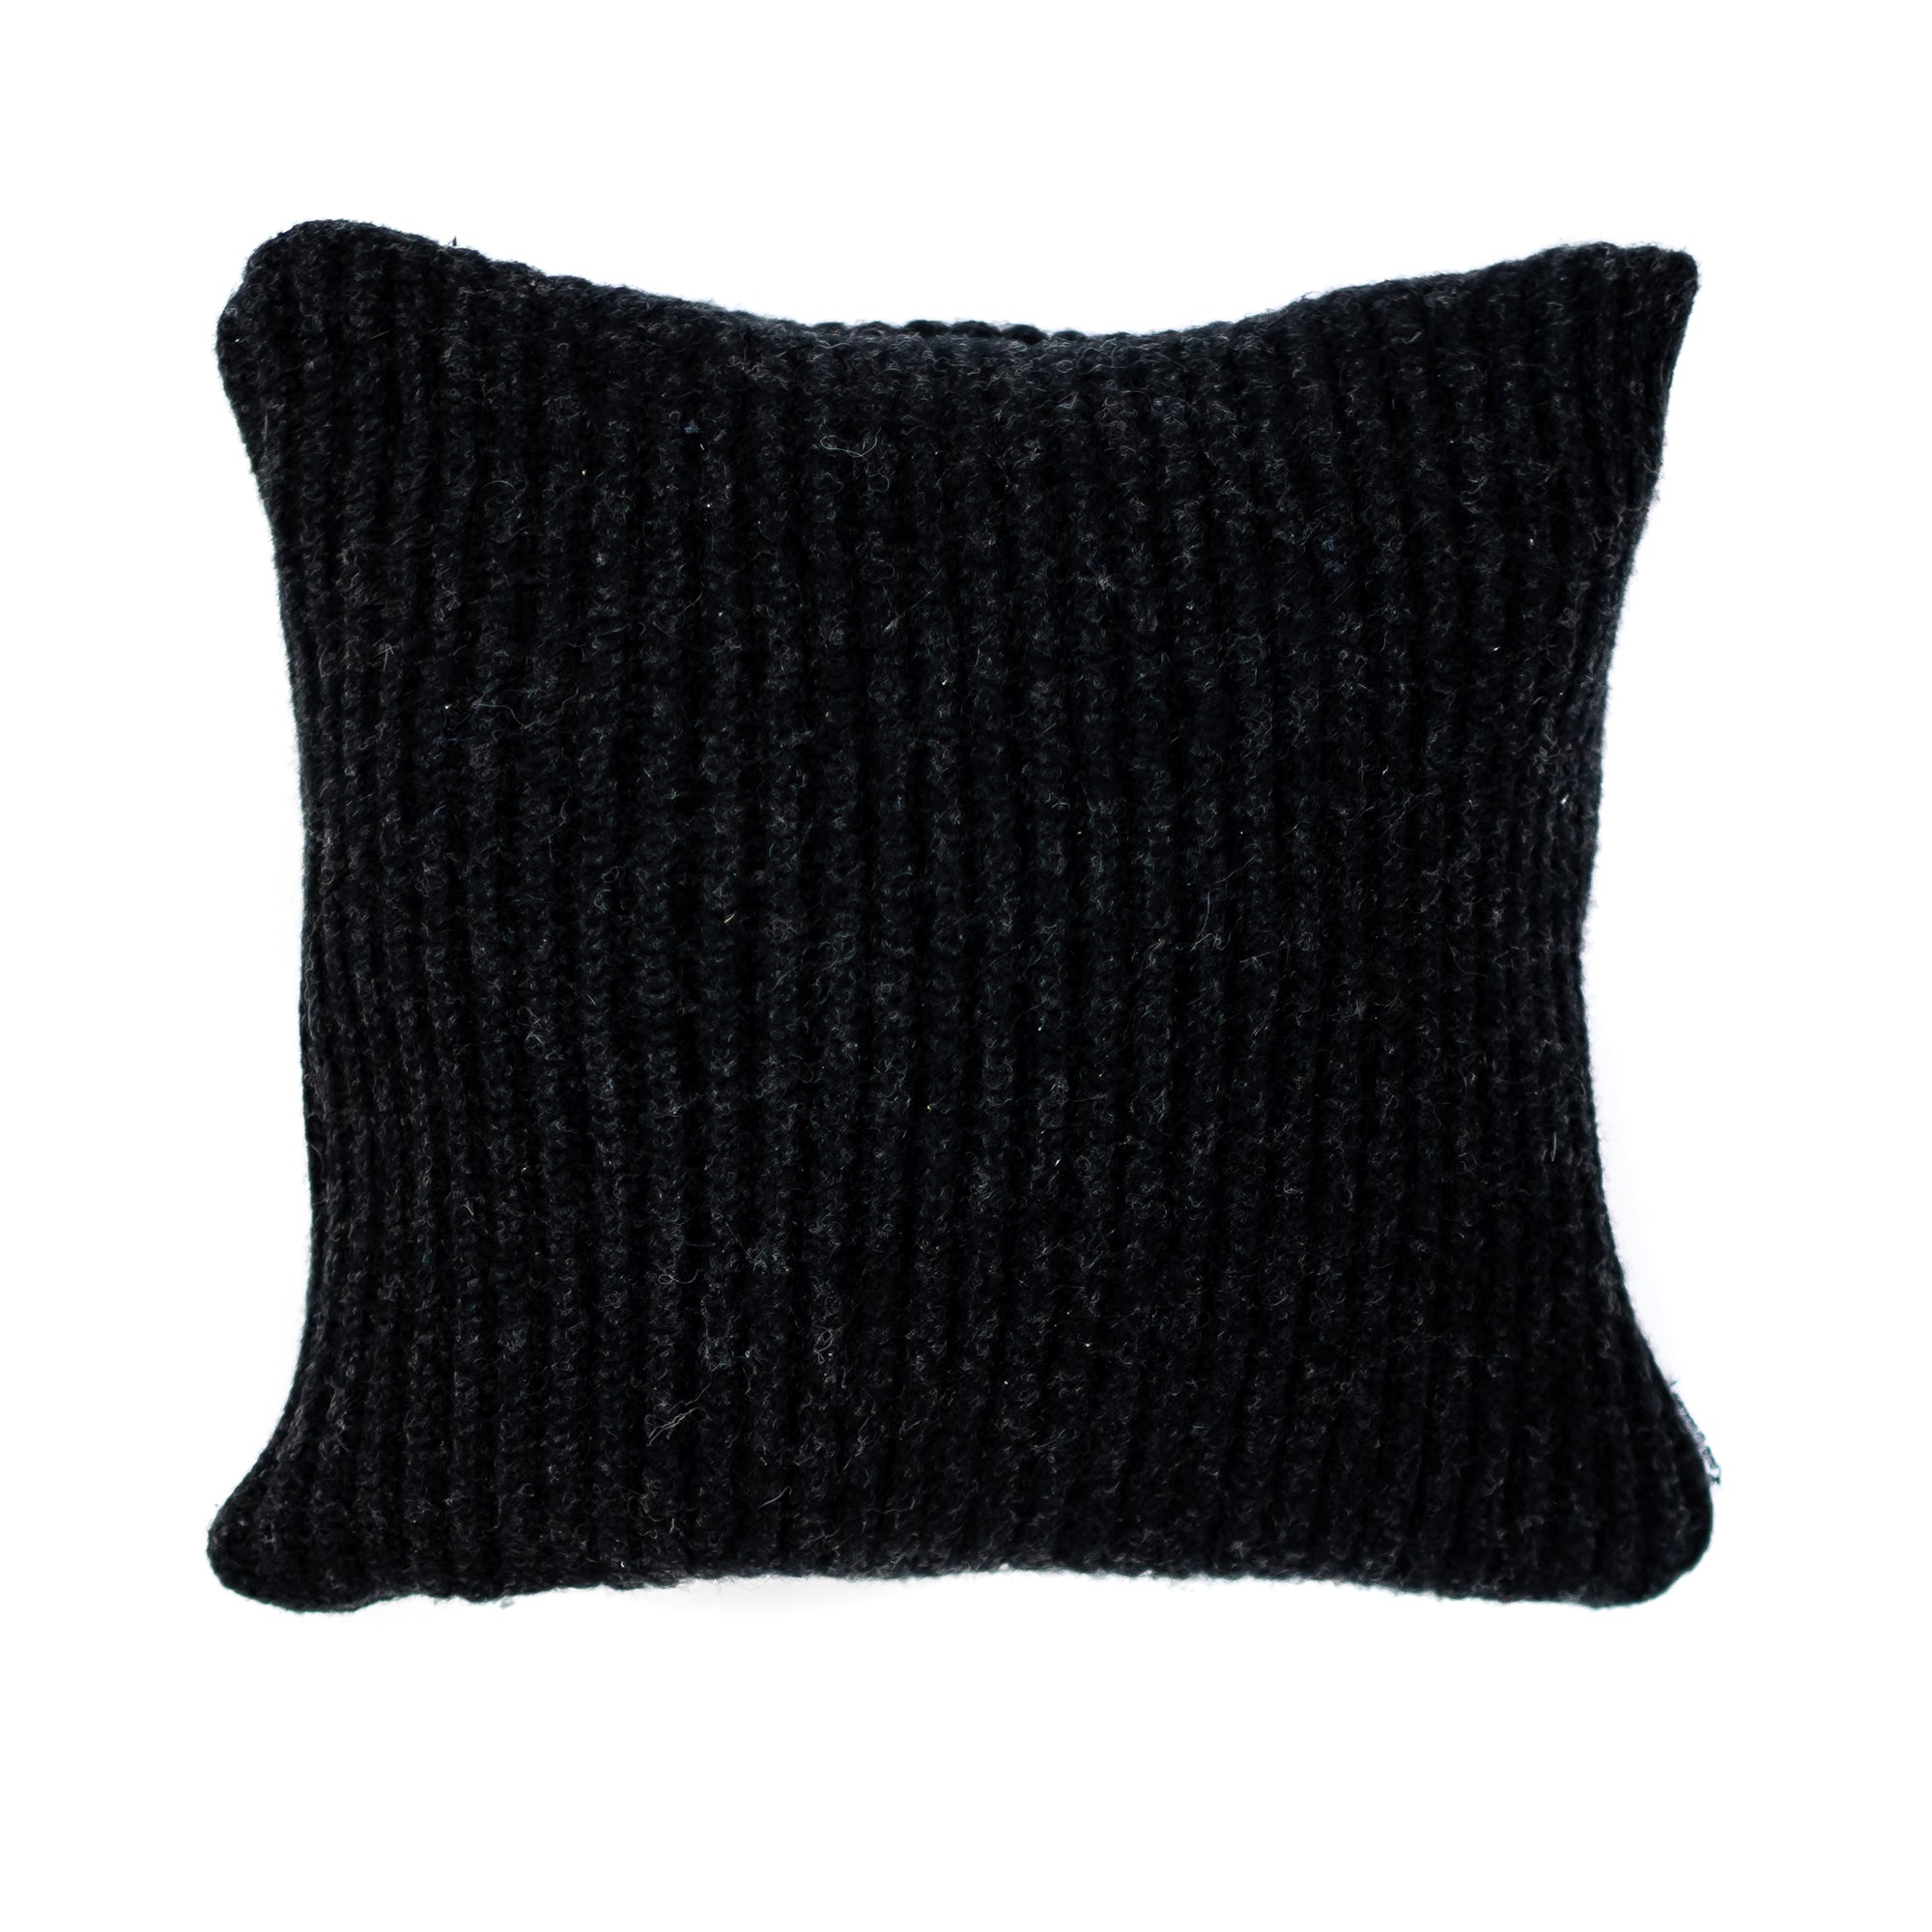 10x10 Wool Black Pillow Cover